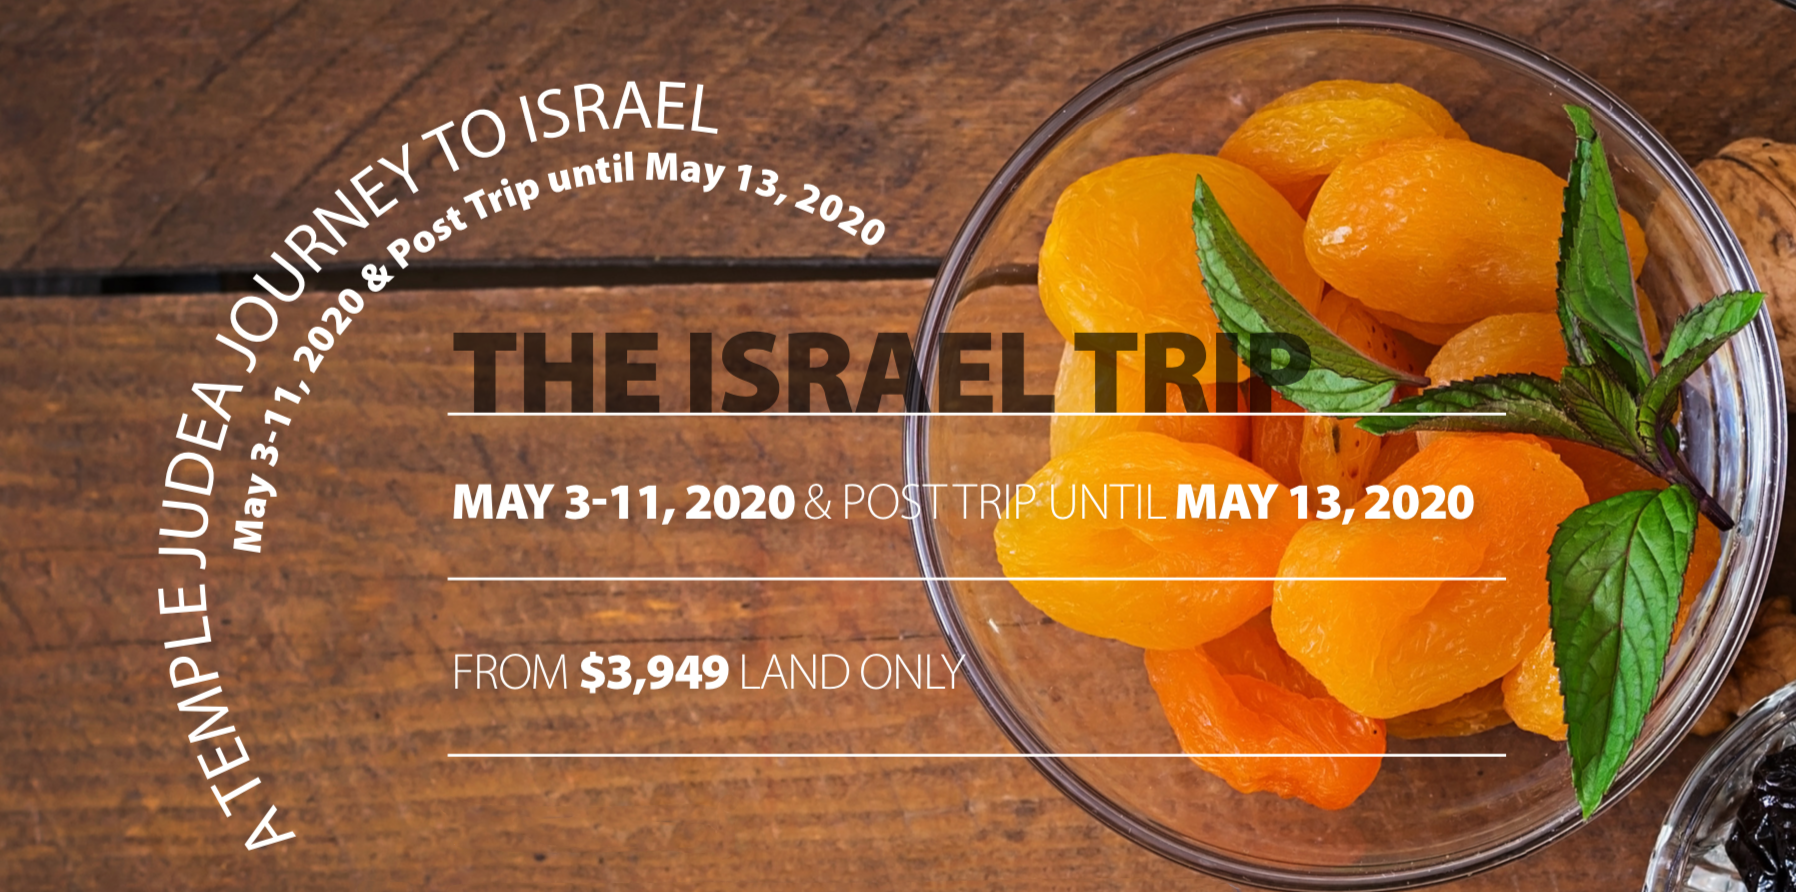 "<a href=""https://www.judeagables.org/theisraeltrip52020""